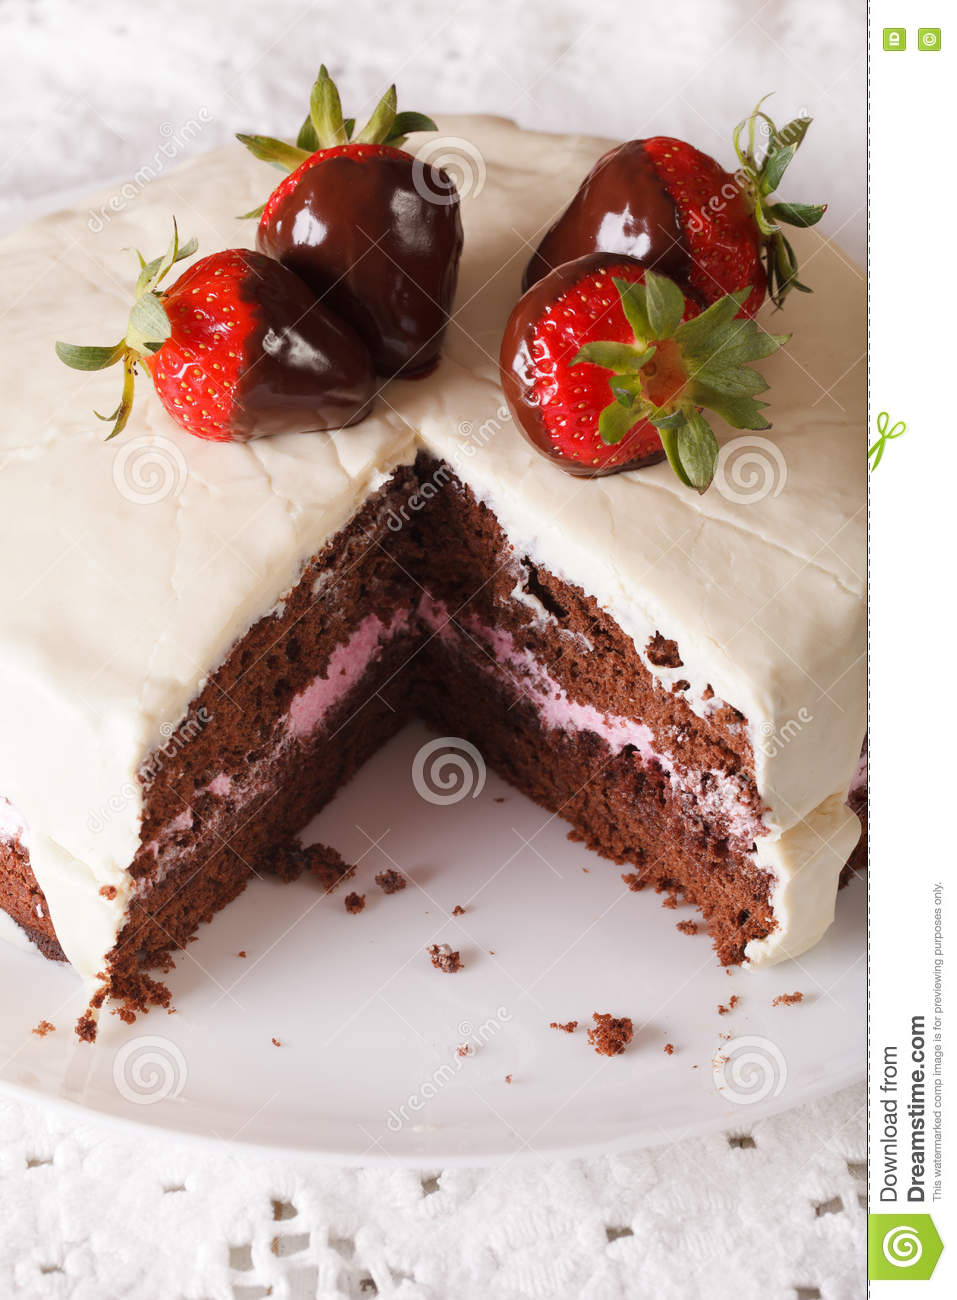 Beautiful Chocolate Cake With White Icing And Strawberries Close